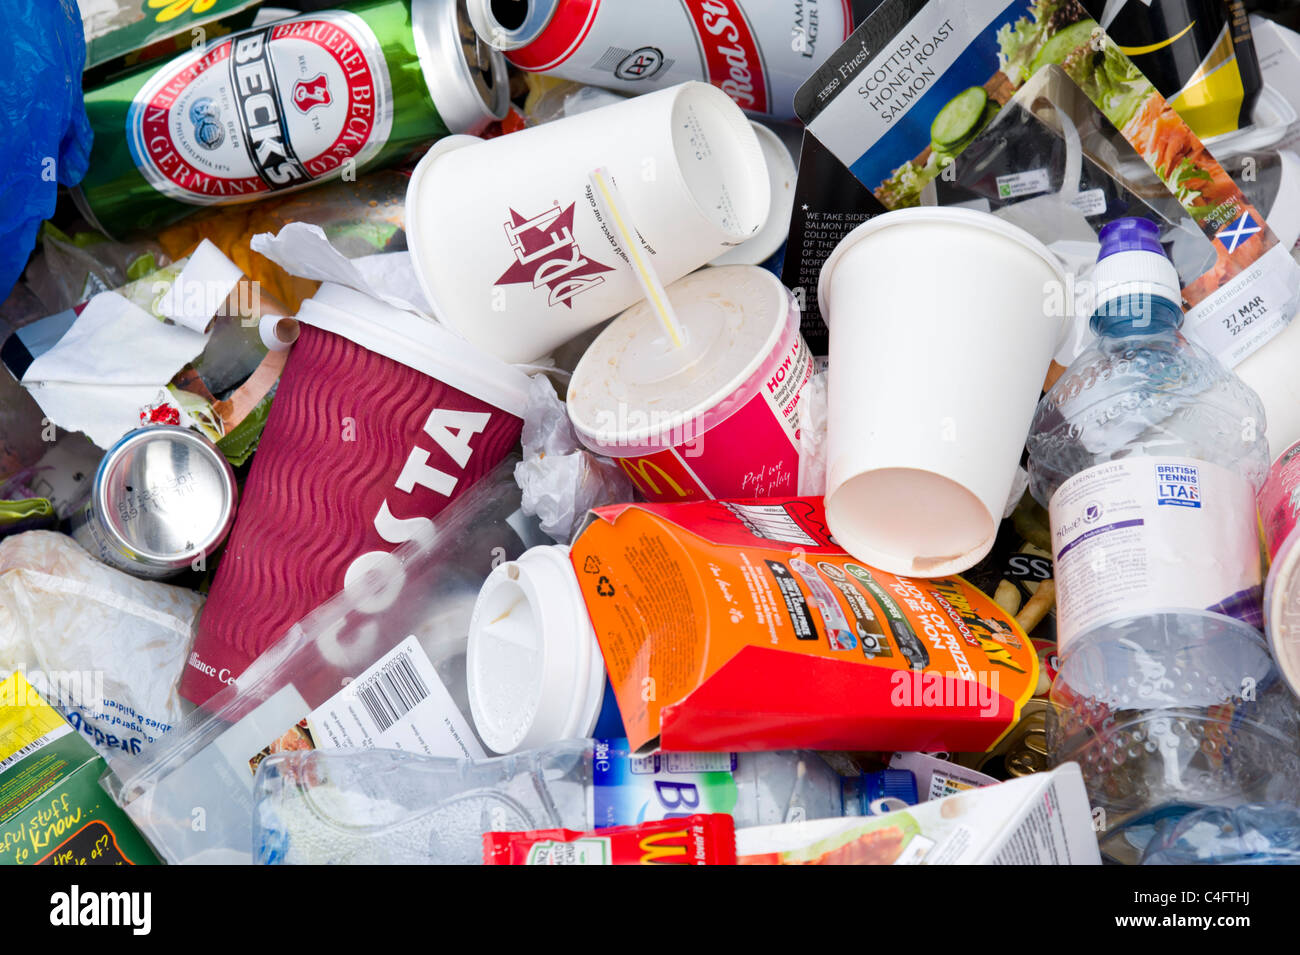 Pile of used disposable plastic fast food and soft drinks containers, UK - Stock Image